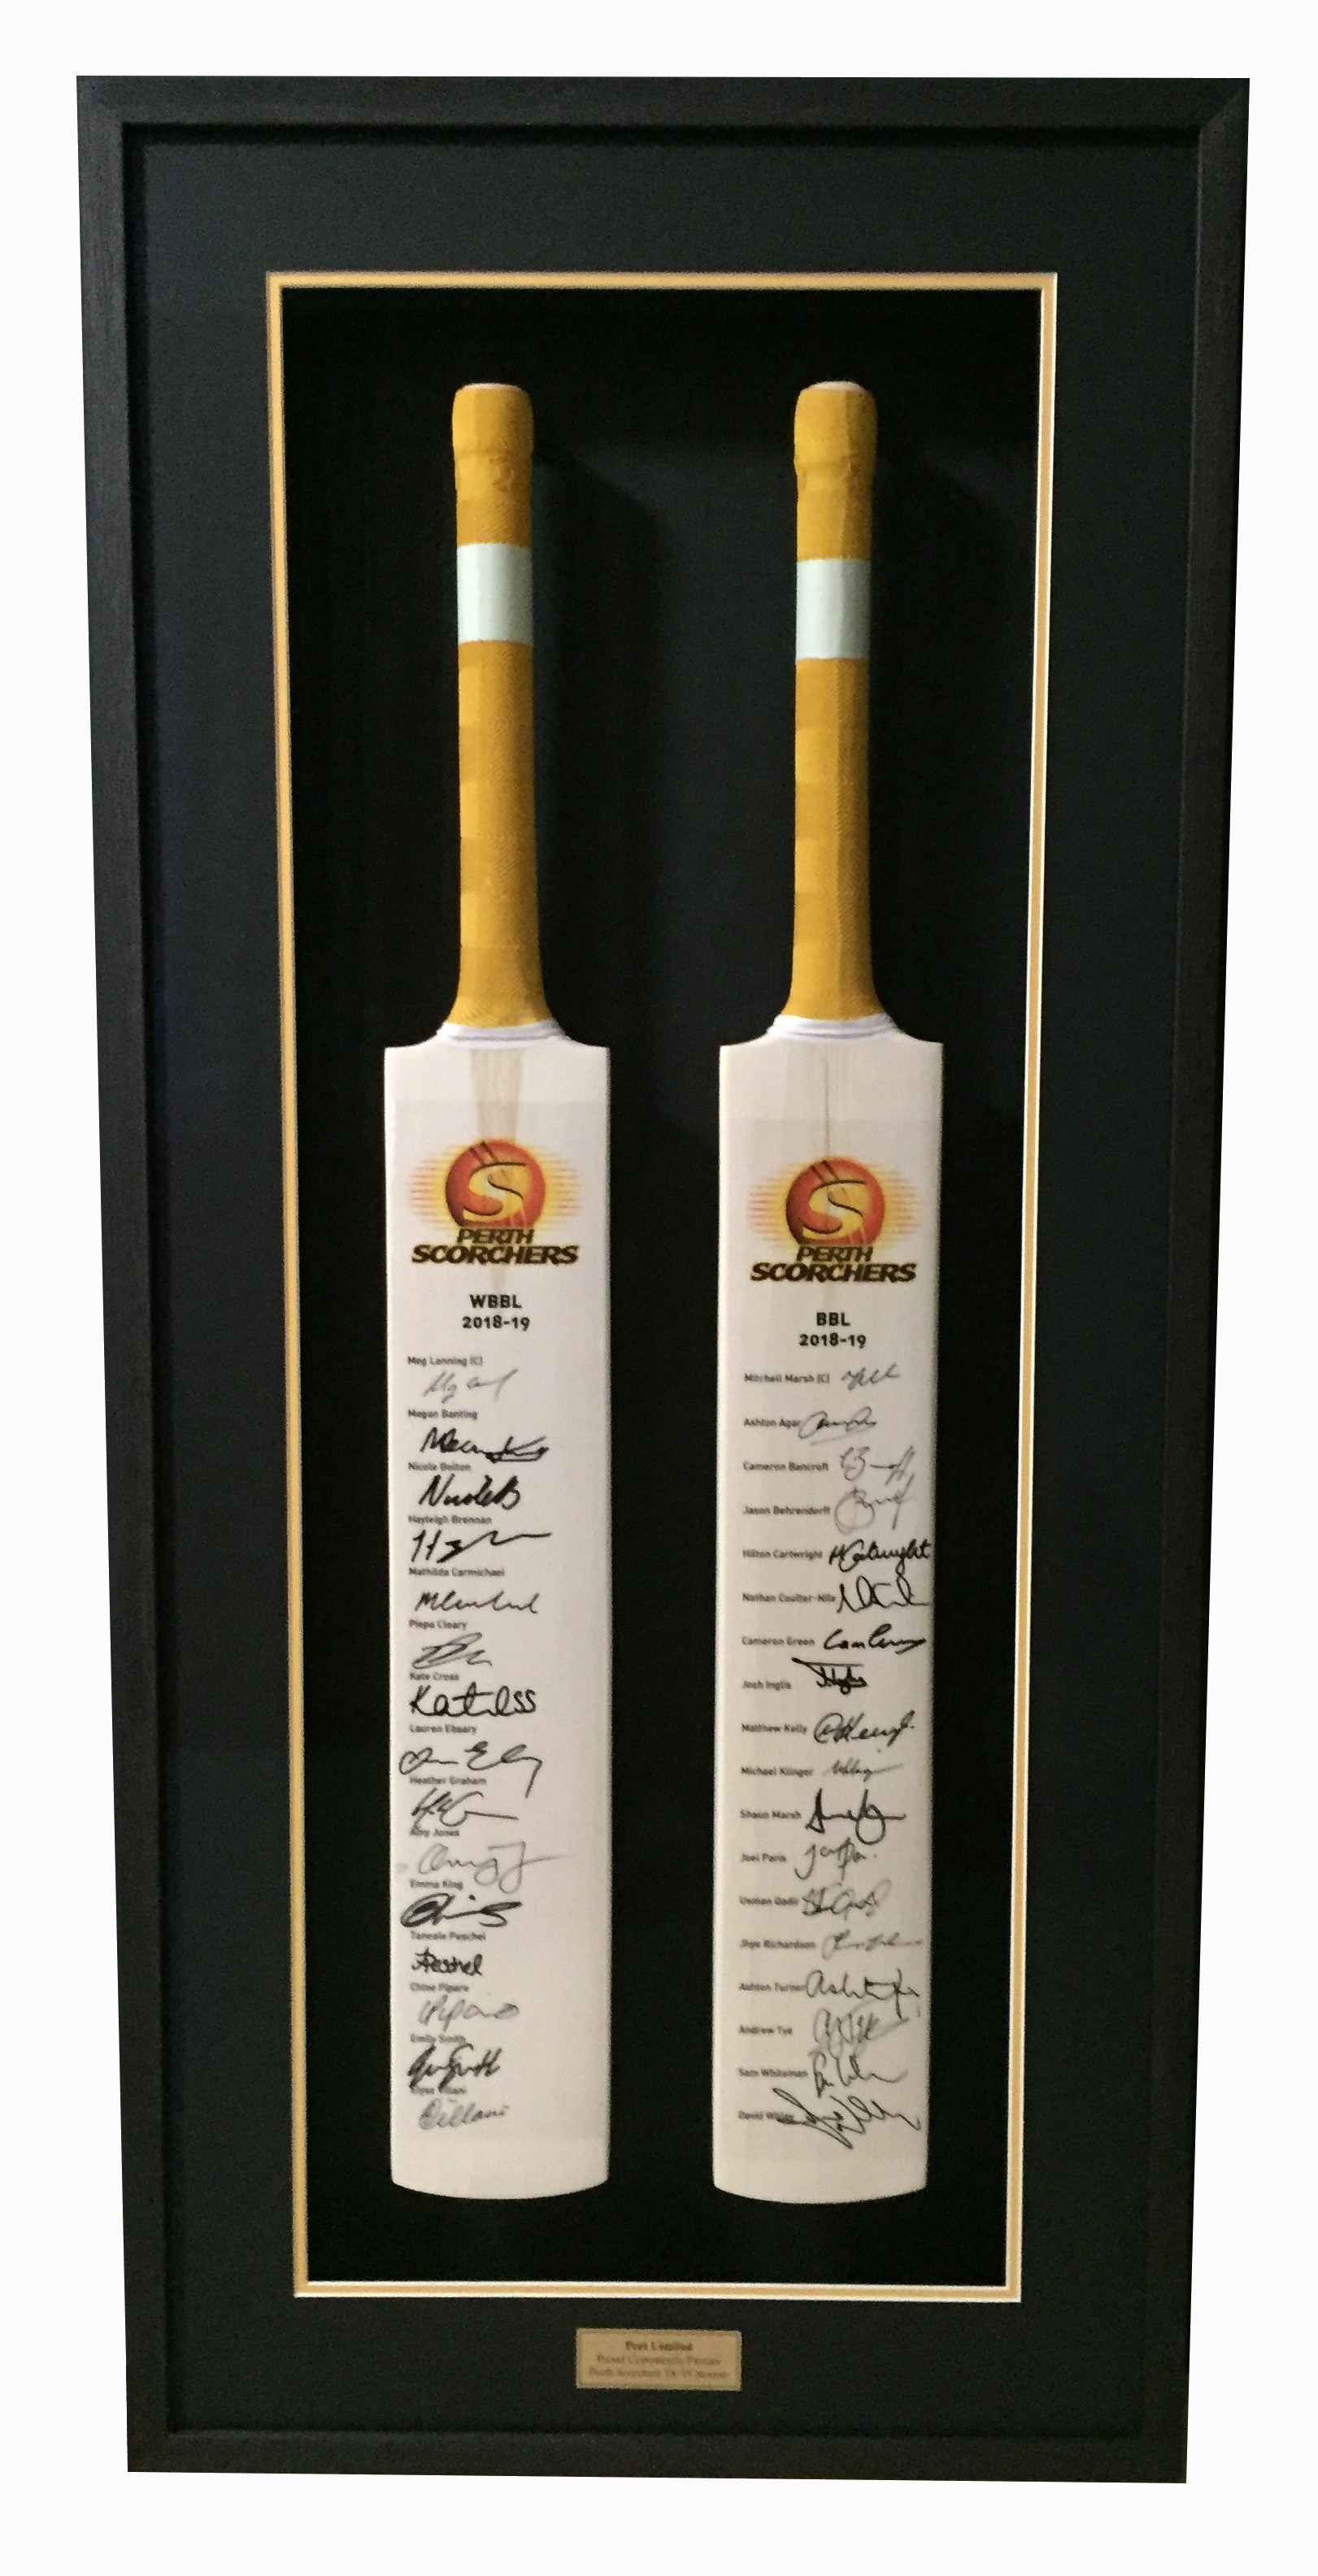 Scorchers_Cricket_Bats_Black